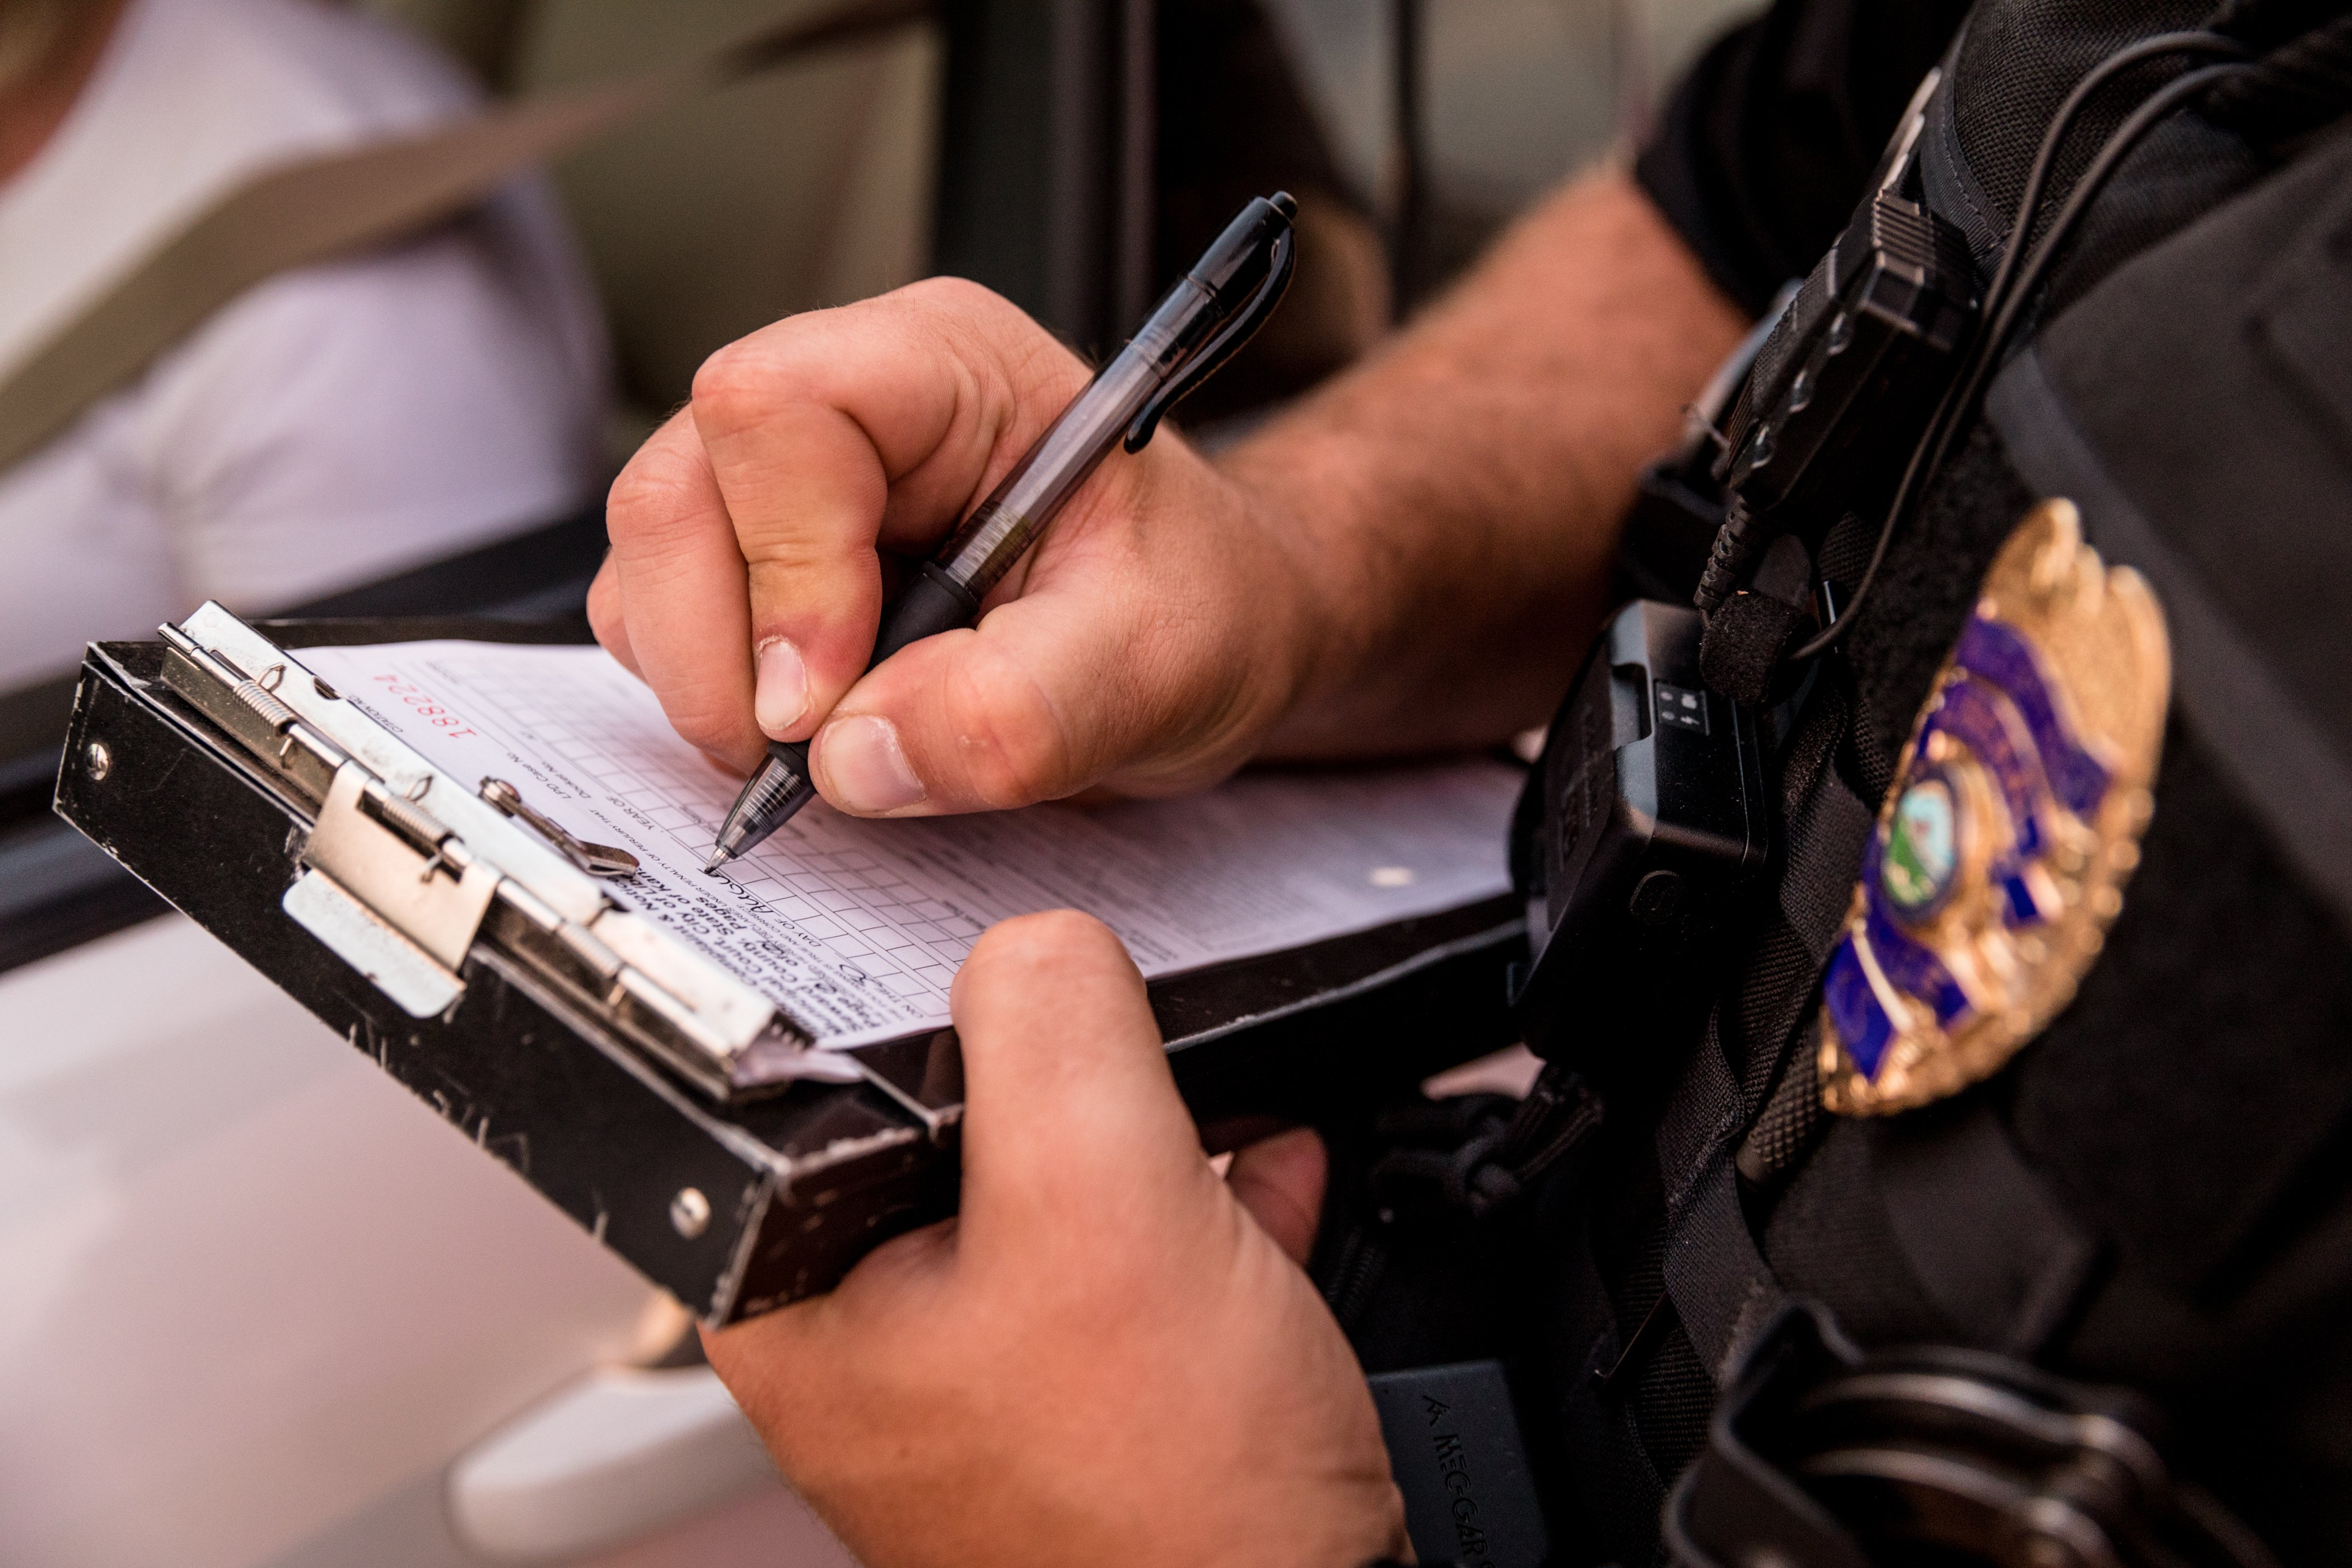 Police officer taking notes. Photo: Shutterstock